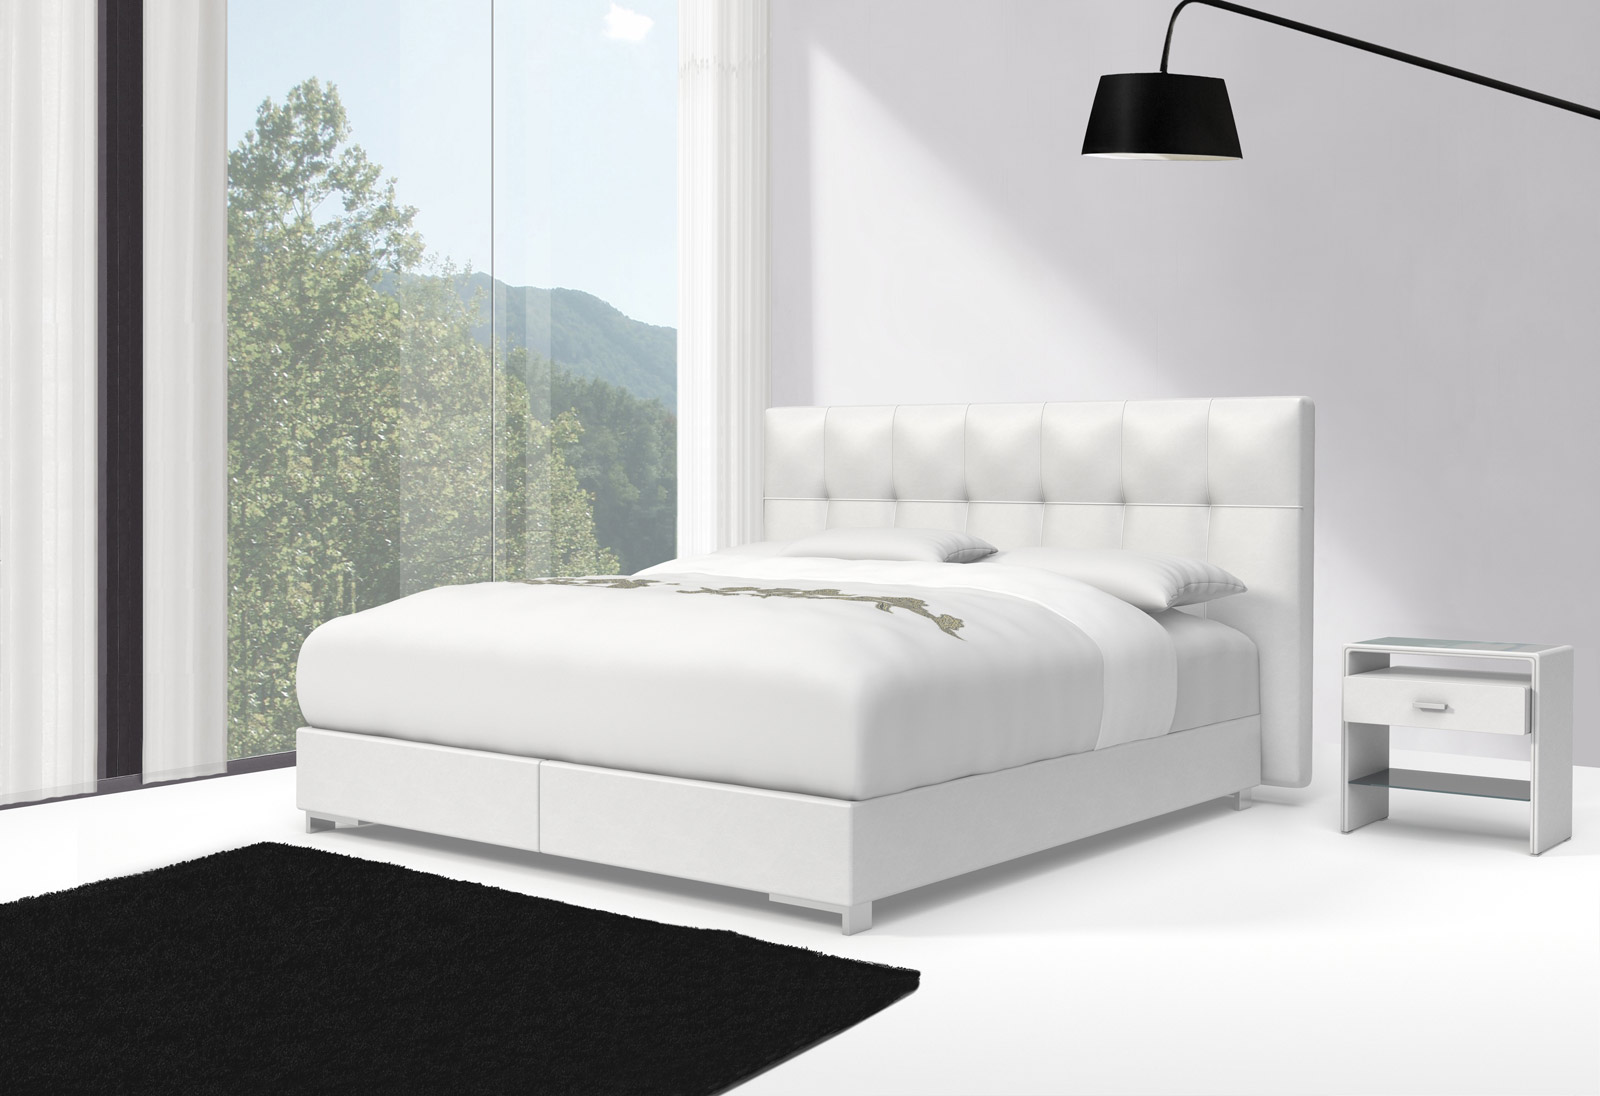 sam design boxspringbett 180 x 200 cm wei zarah toledo 27cm. Black Bedroom Furniture Sets. Home Design Ideas